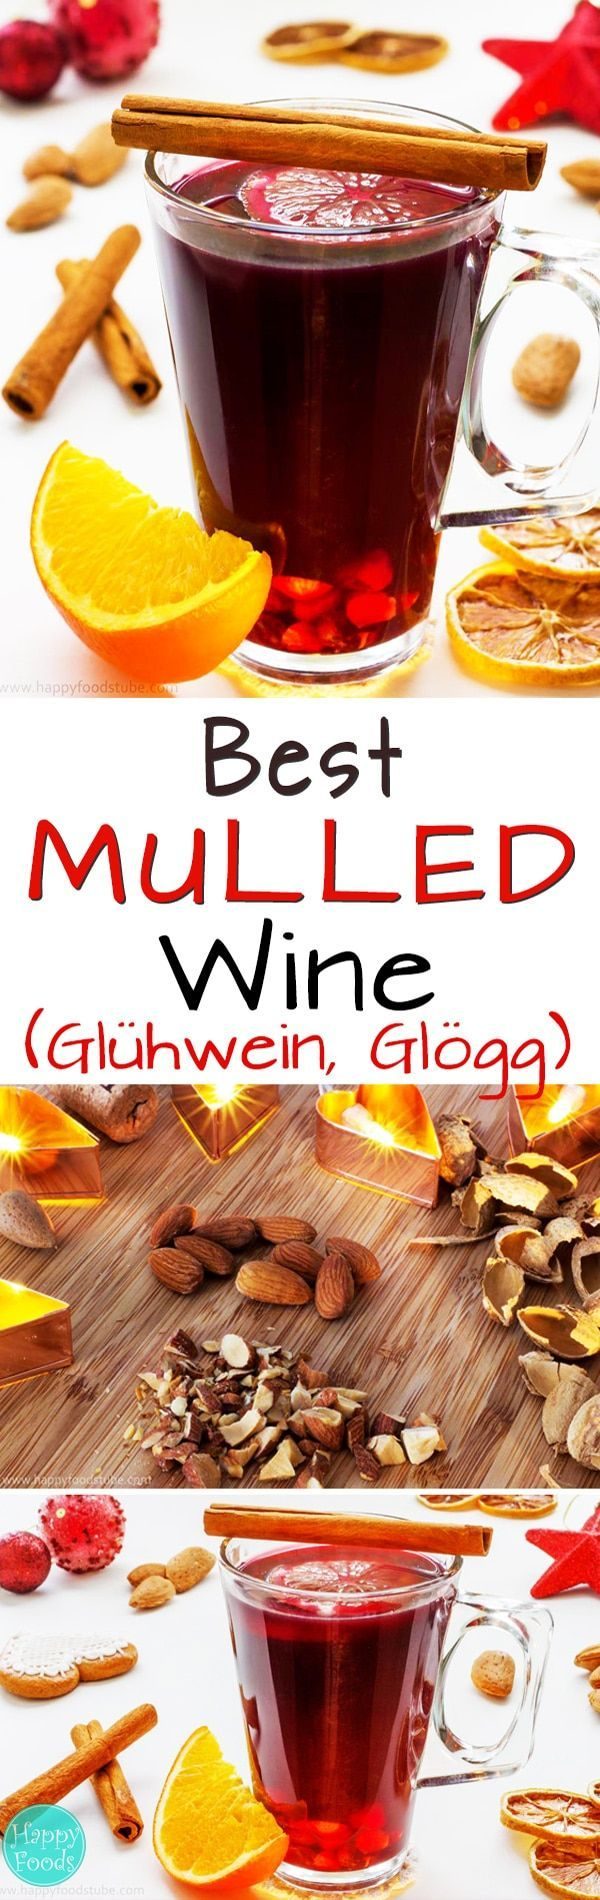 Mulled Wine (Glühwein, Glögg) is a typical winter drink. It's made of red wine to which mulling spices, sugar, citrus & raisins. Best Christmas drink recipe. #mulledwine #howtomake #winterdrinks #drinks #holidaydrinks #christmasdrinks #holidaypunch #glögg #glögi #glühwein #vinchaud #vinfiert via @happyfoodstube